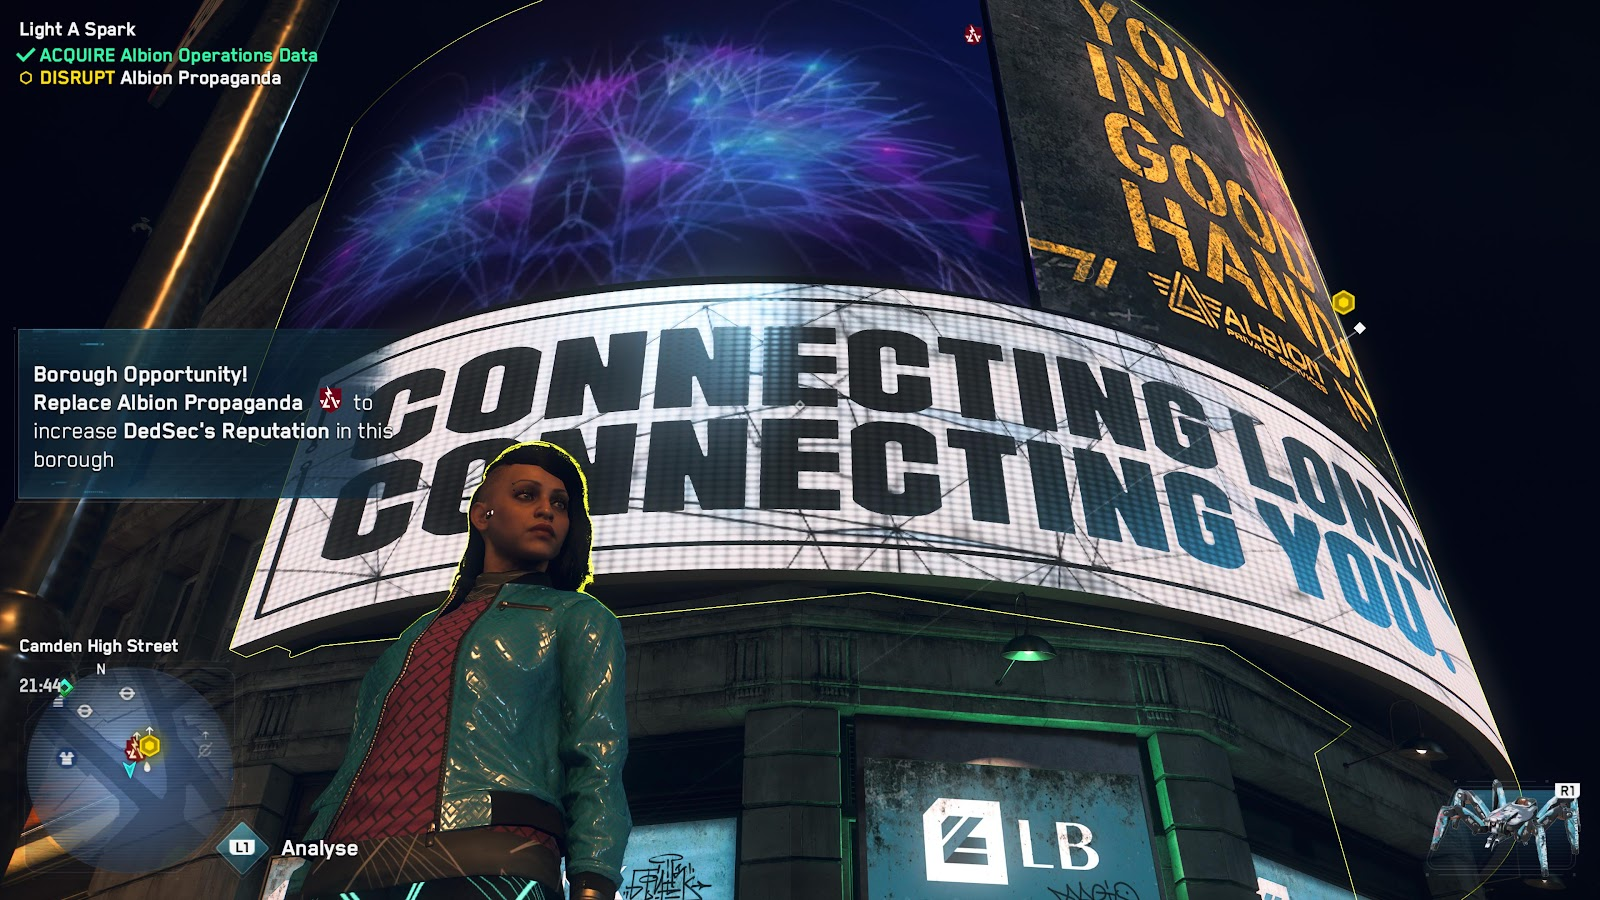 Watch Dogs character standing in front of an Albion propaganda billboard.